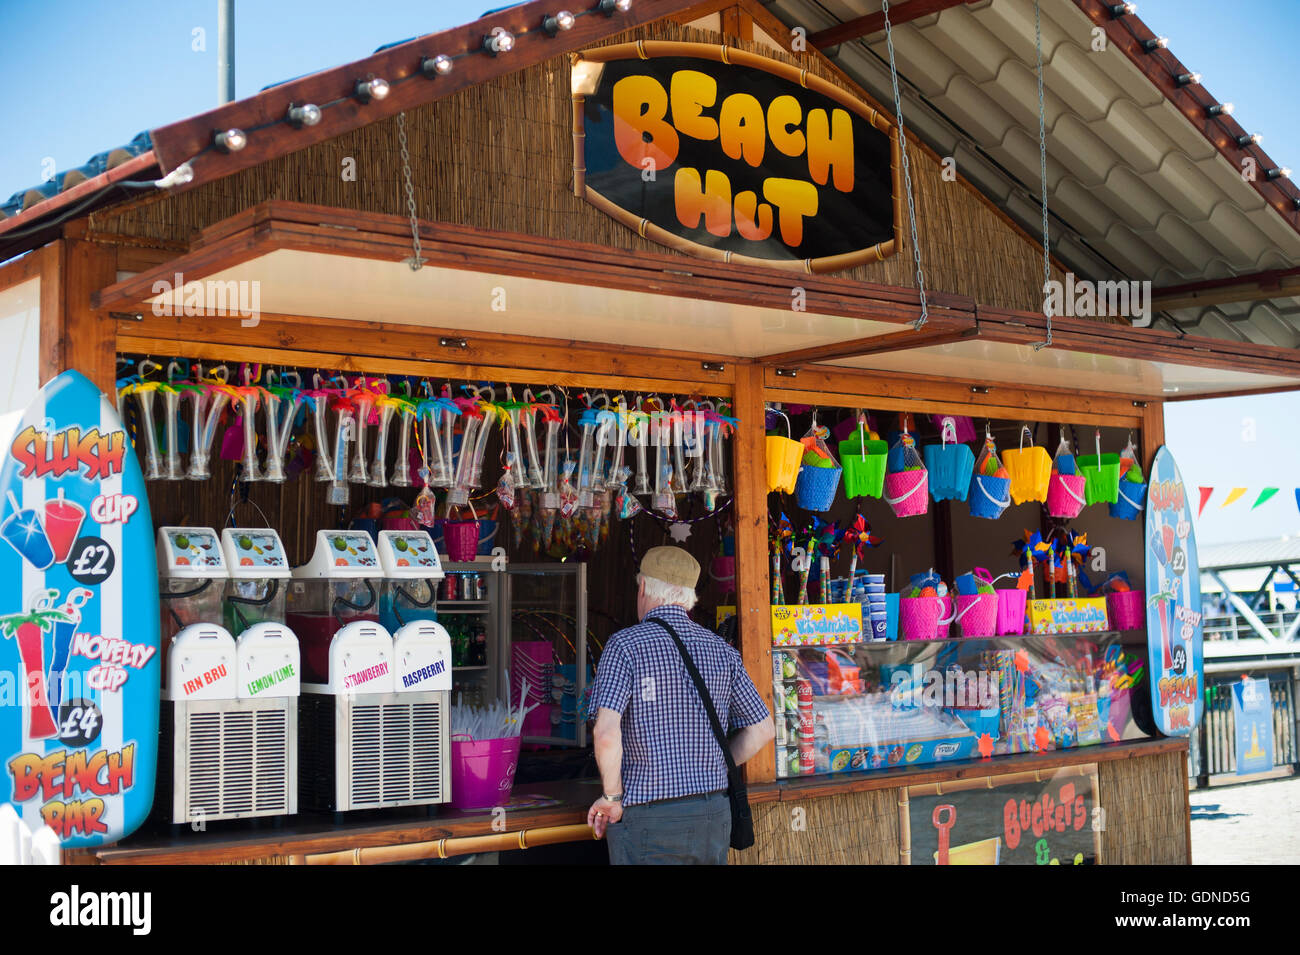 A temporary beach hut stall set up at the Liverpool pier head during summer heatwave 2016 uk Stock Photo